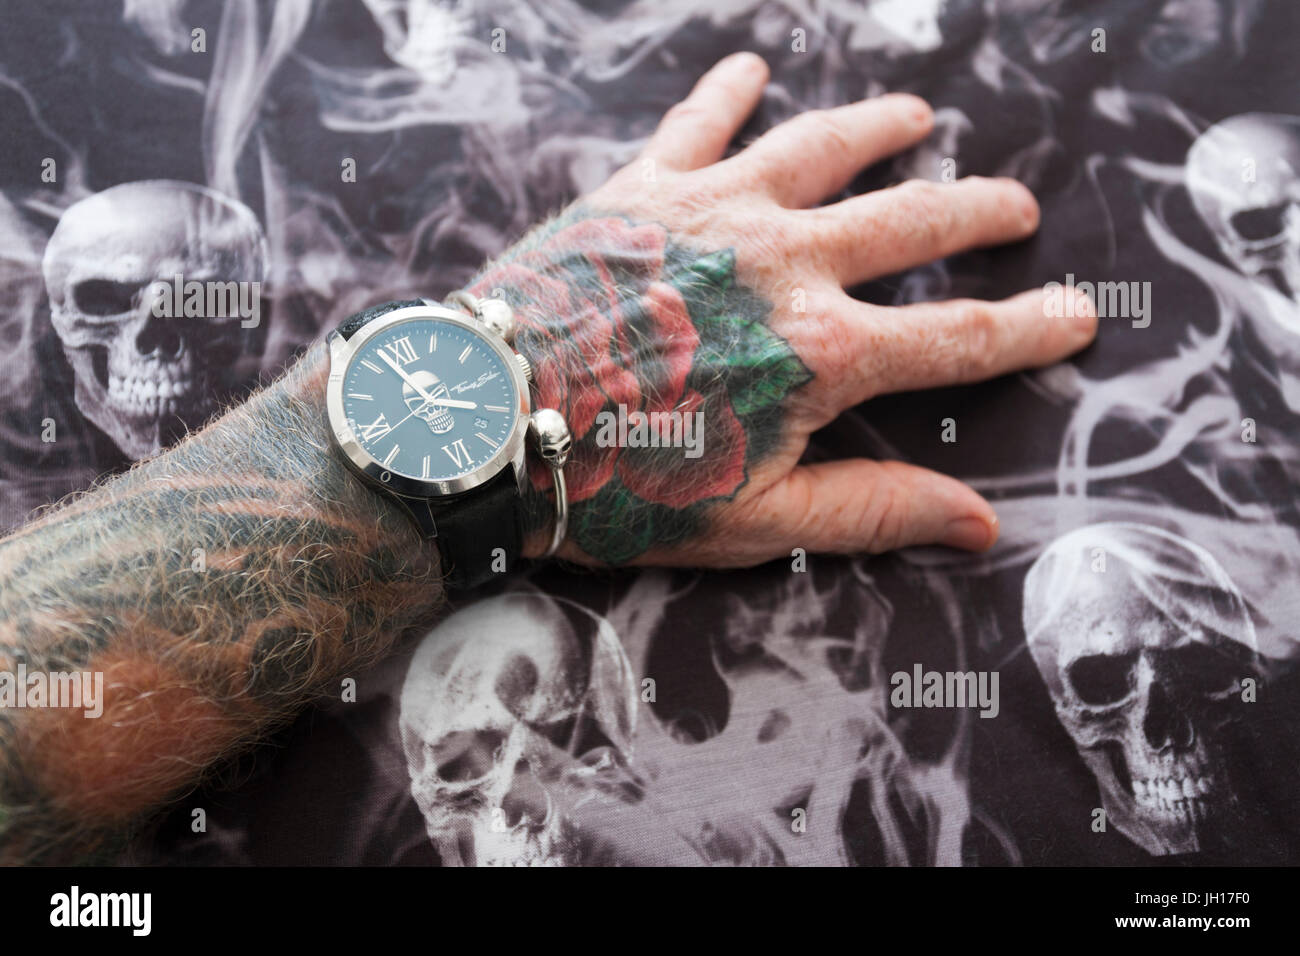 Tattoo Wrist Watch Stock Photos Images Blank Human Body Diagram Thomas Sabo And Tattoos Image